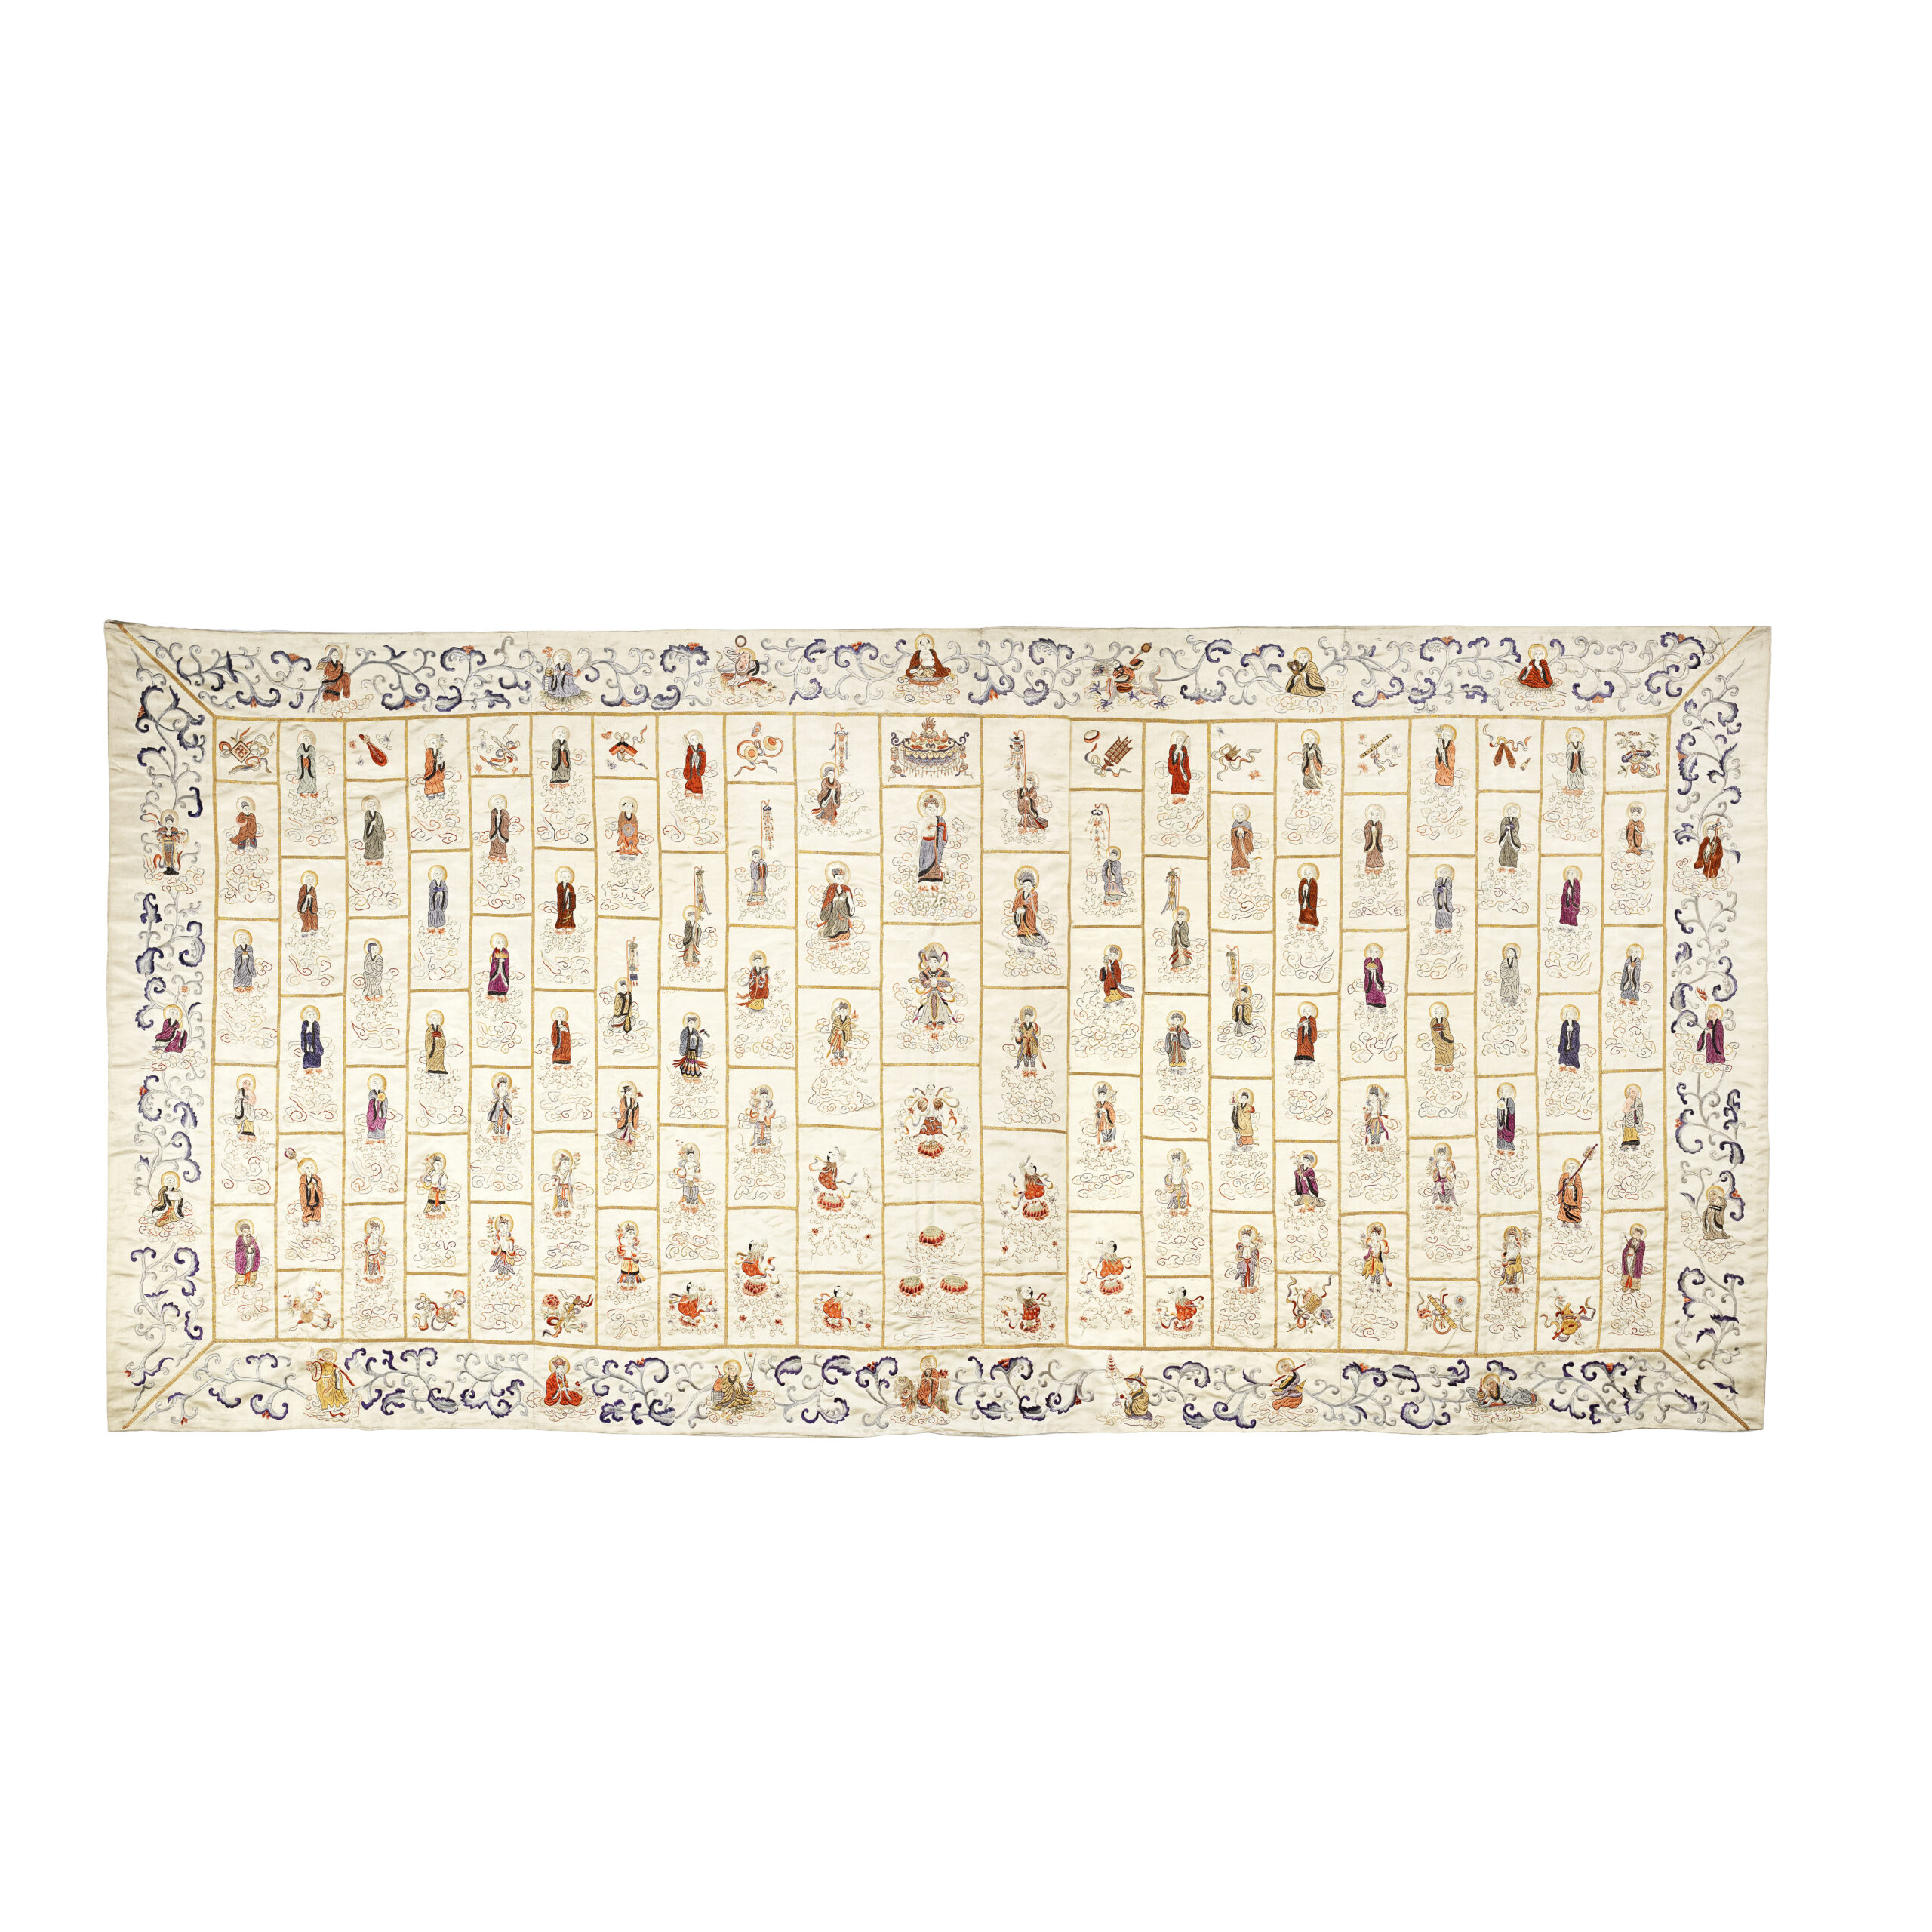 A FINE CORAL AND SEED PEARL-EMBROIDERED IVORY SILK BUDDHIST MONK'S ROBE, JIASHA | 124cm (48 3/4in) x 266cm (104 3/4in)